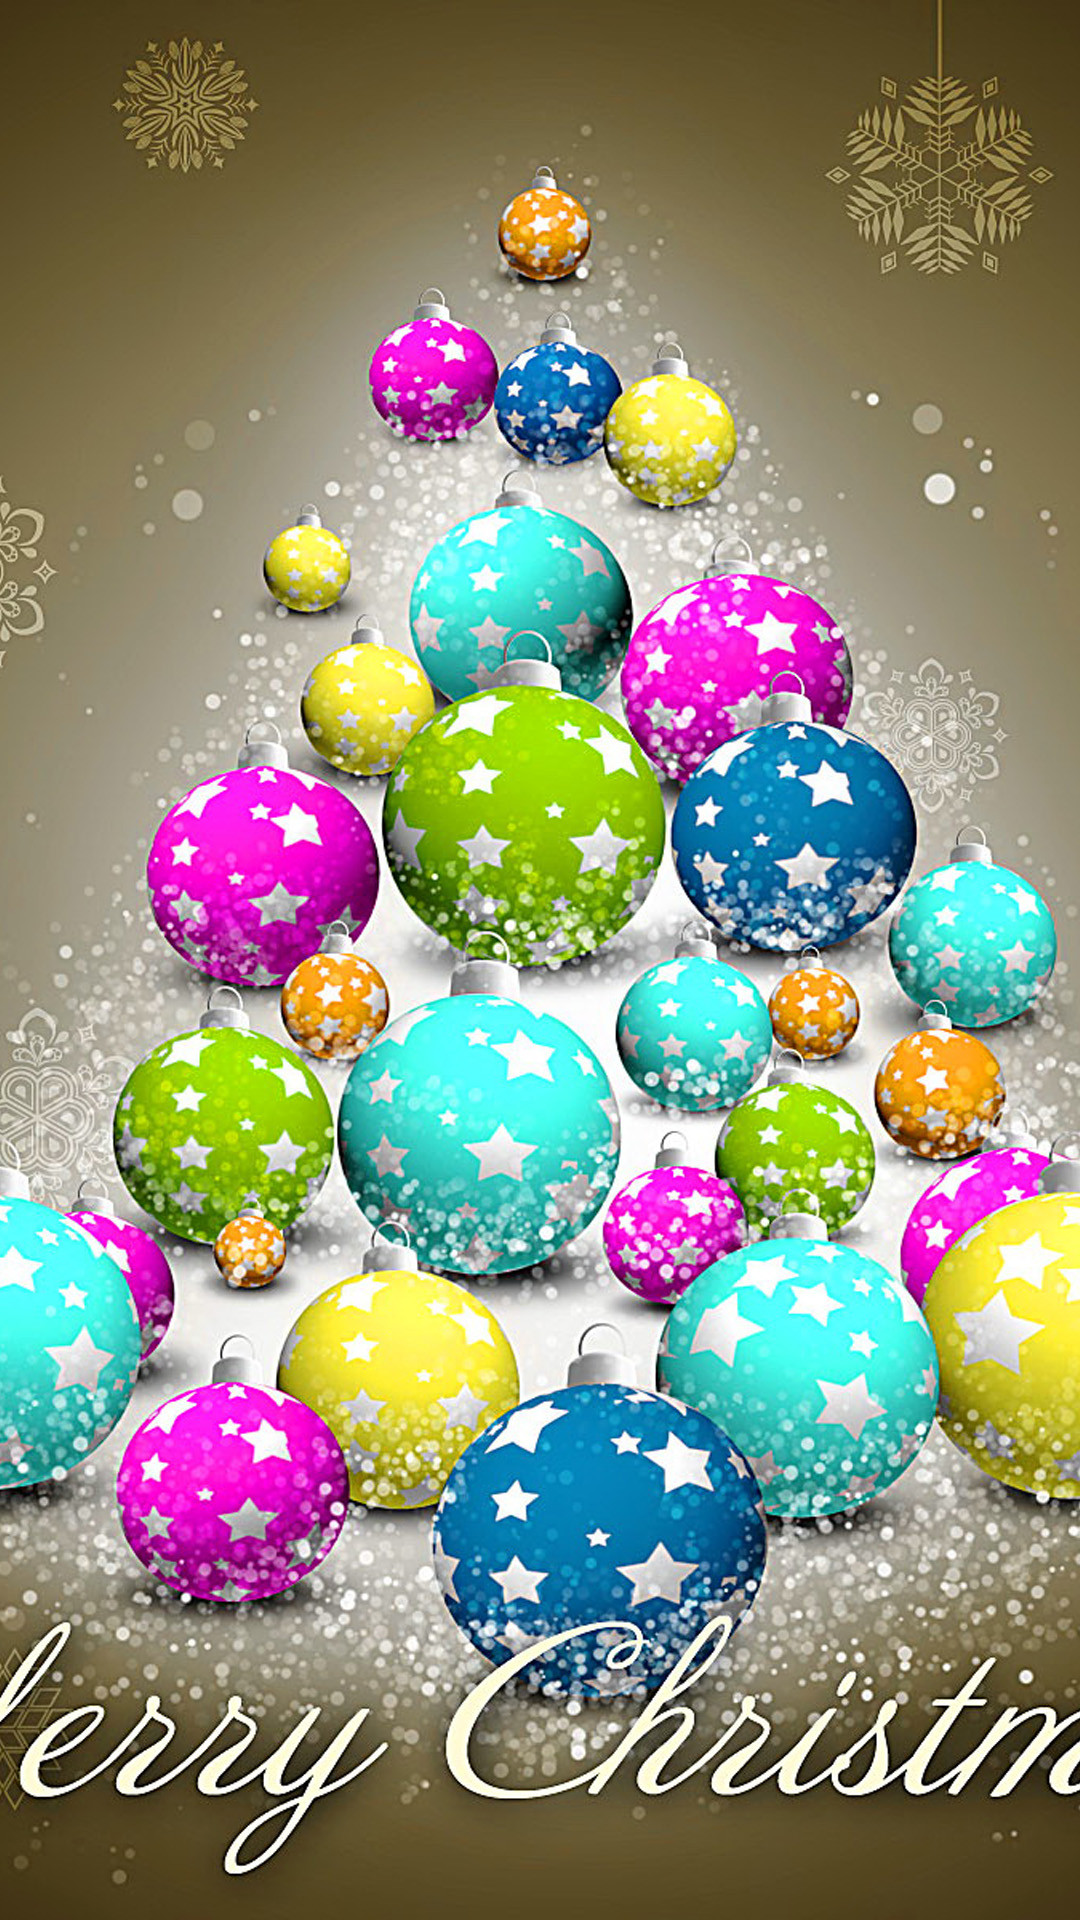 Colorful Christmas iphone wallpaper.